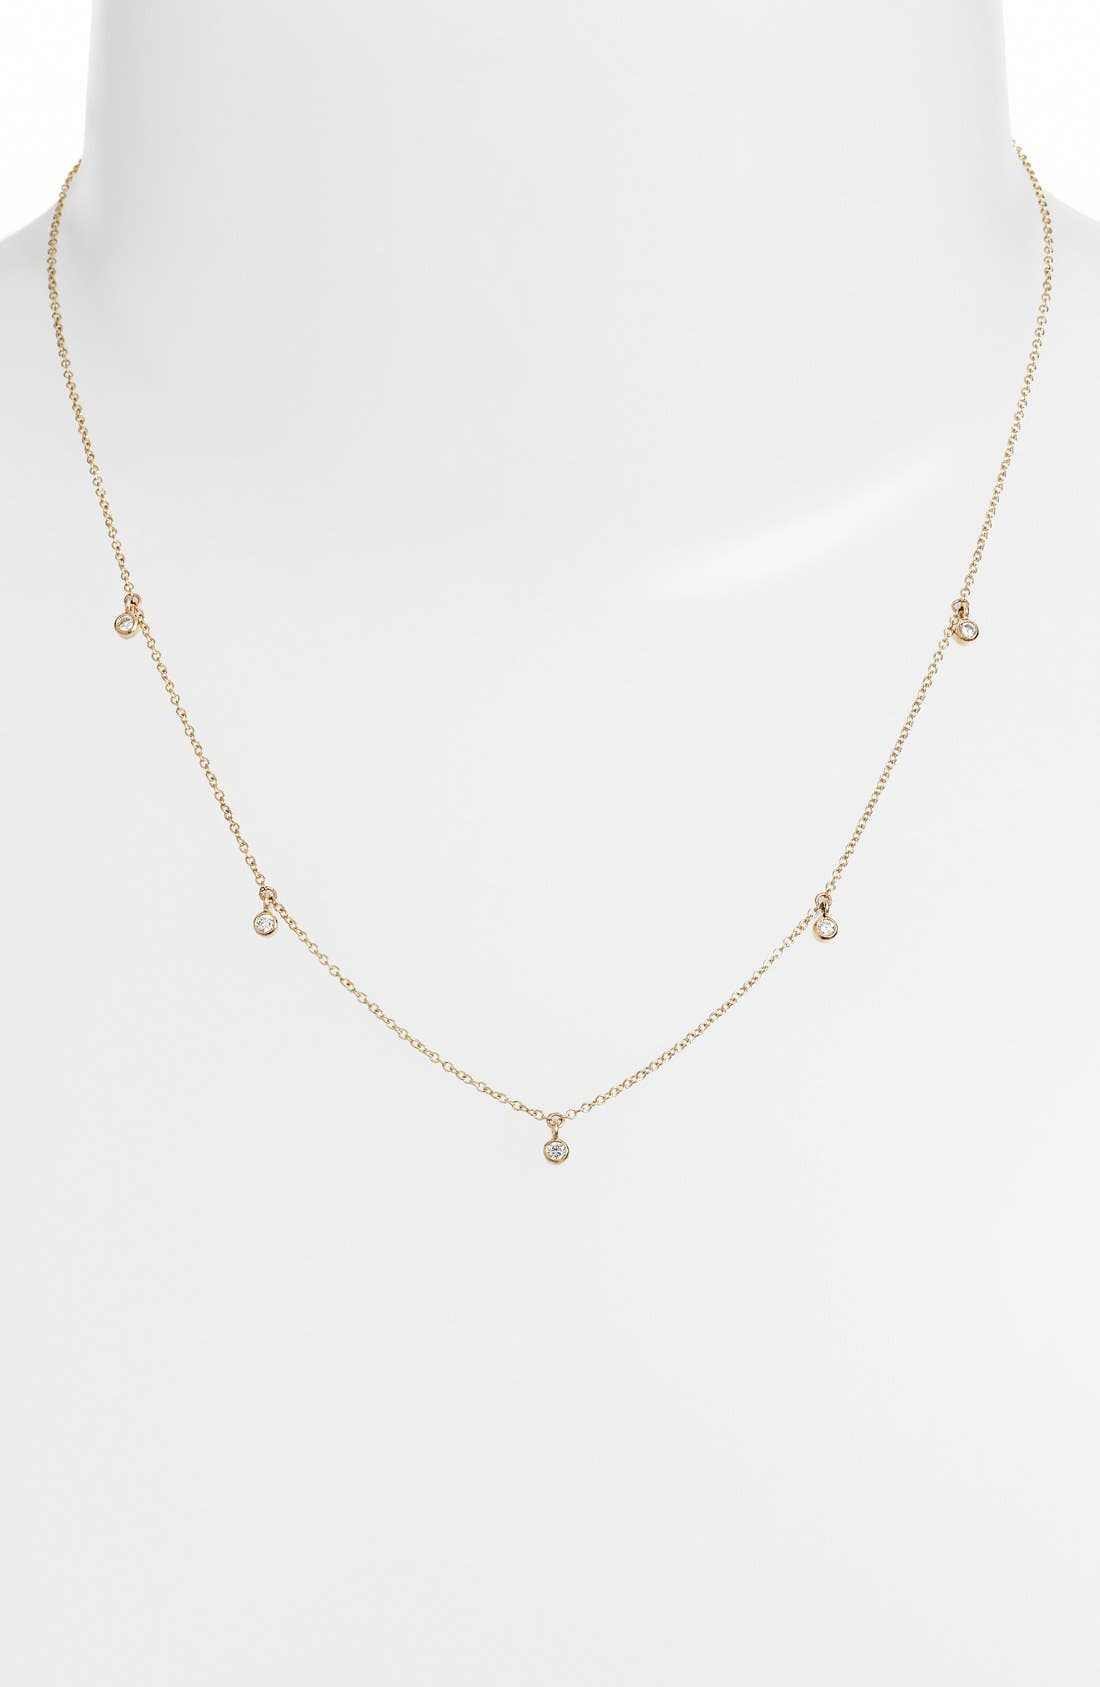 Diamond Strand Necklace,                         Main,                         color, Yellow Gold